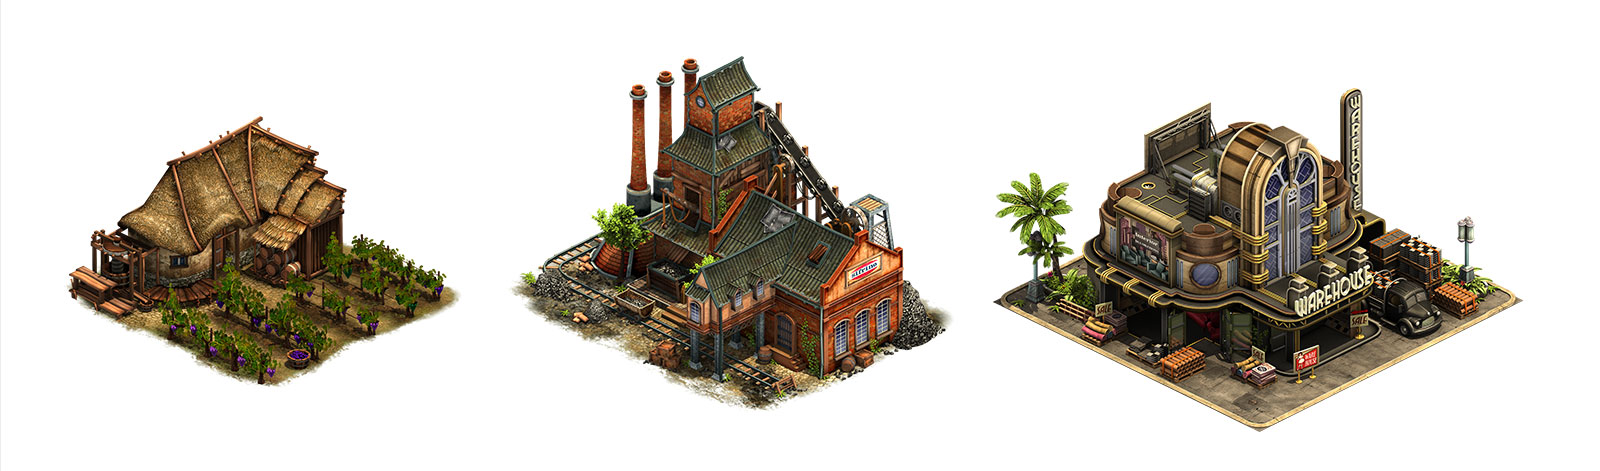 Forge of Empires building examples